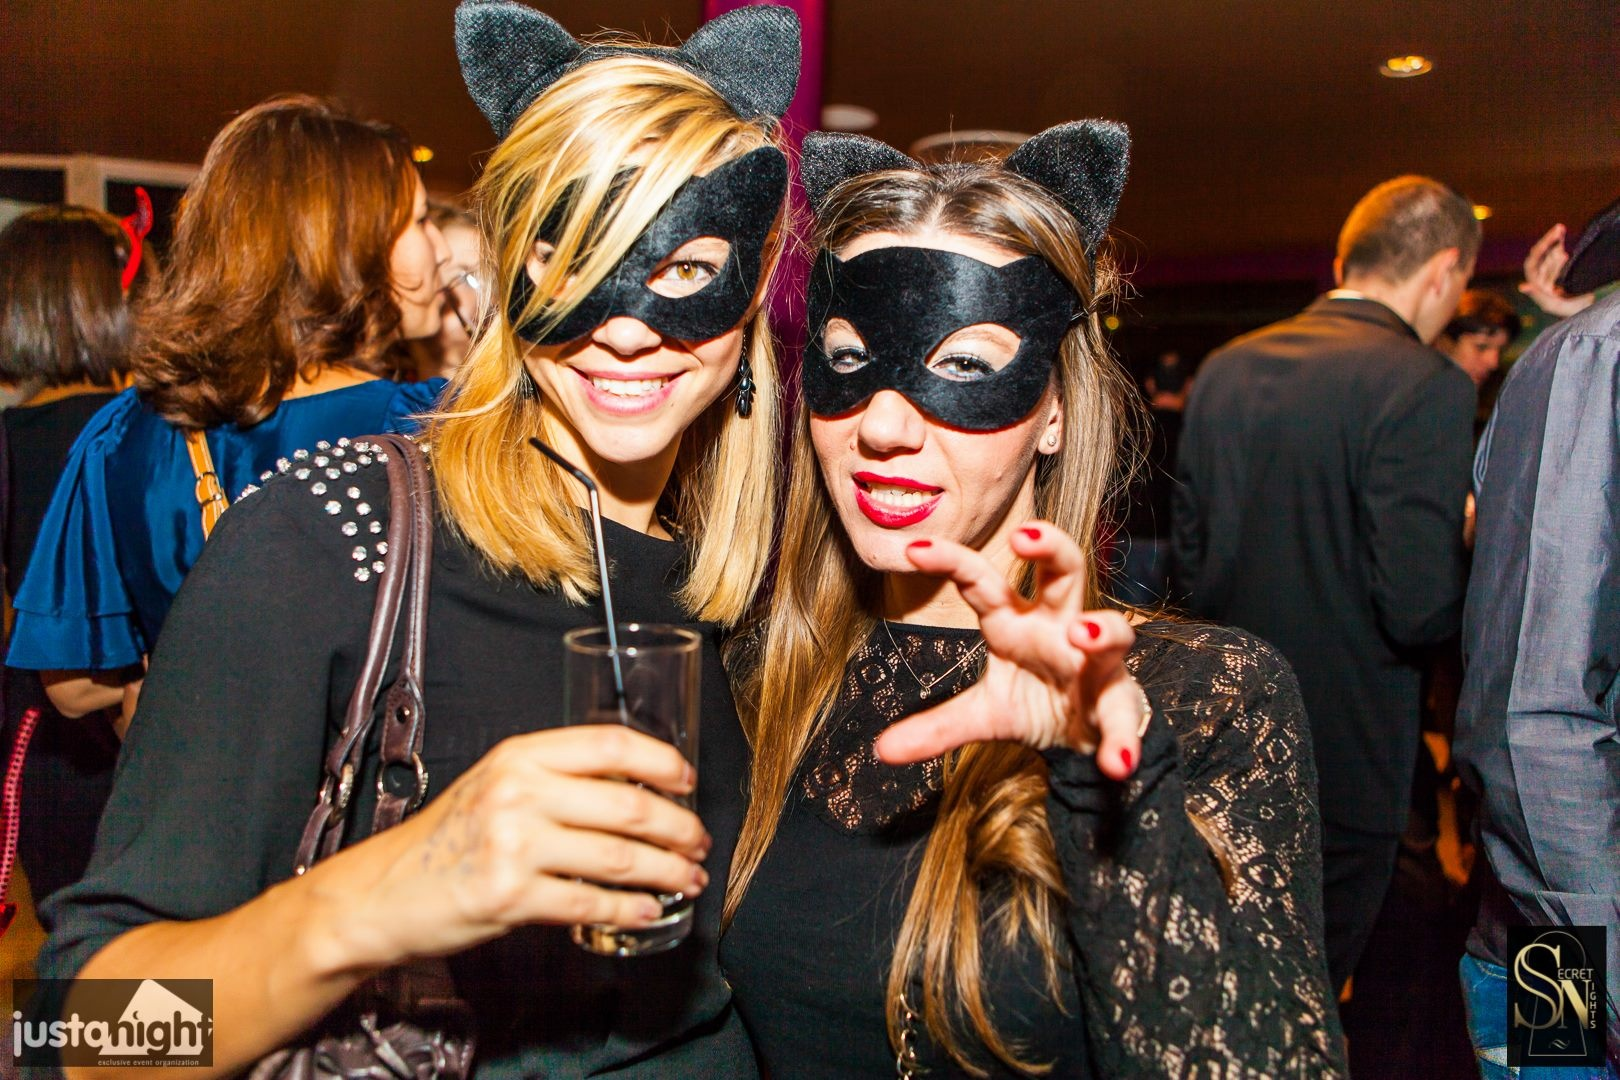 the best halloween party / it tower (terror) - brusselslife